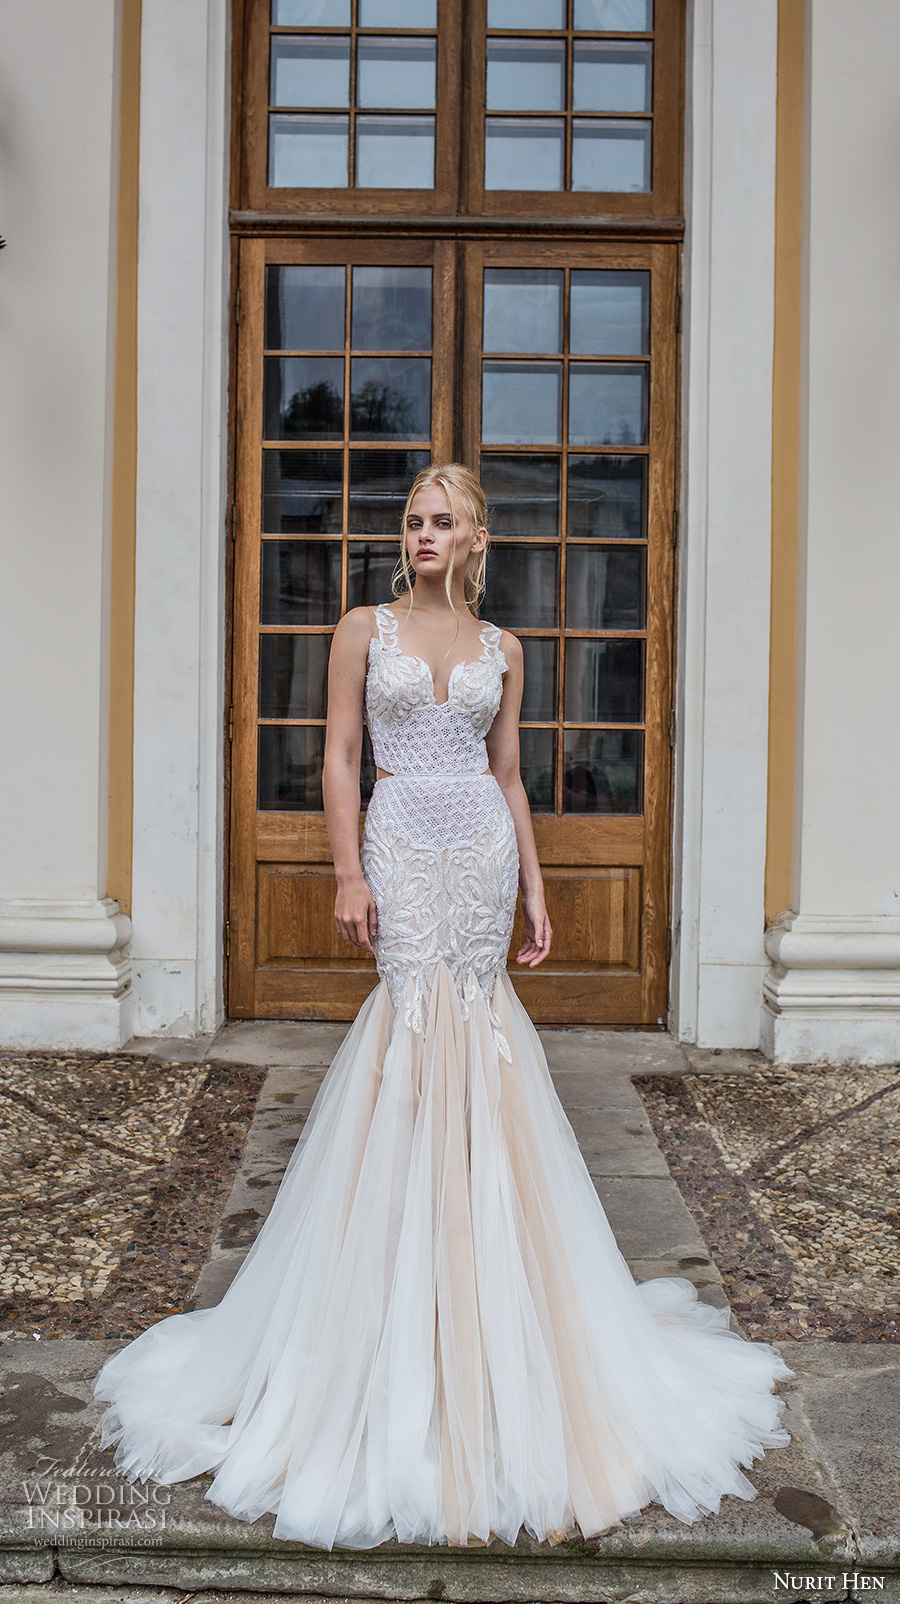 nurit hen 2017 bridal sleeveless sweetheart neckline fully embellished bodice tulle skirt elegant glamorous mermaid wedding dress illusion lace back chapel train (17) mv